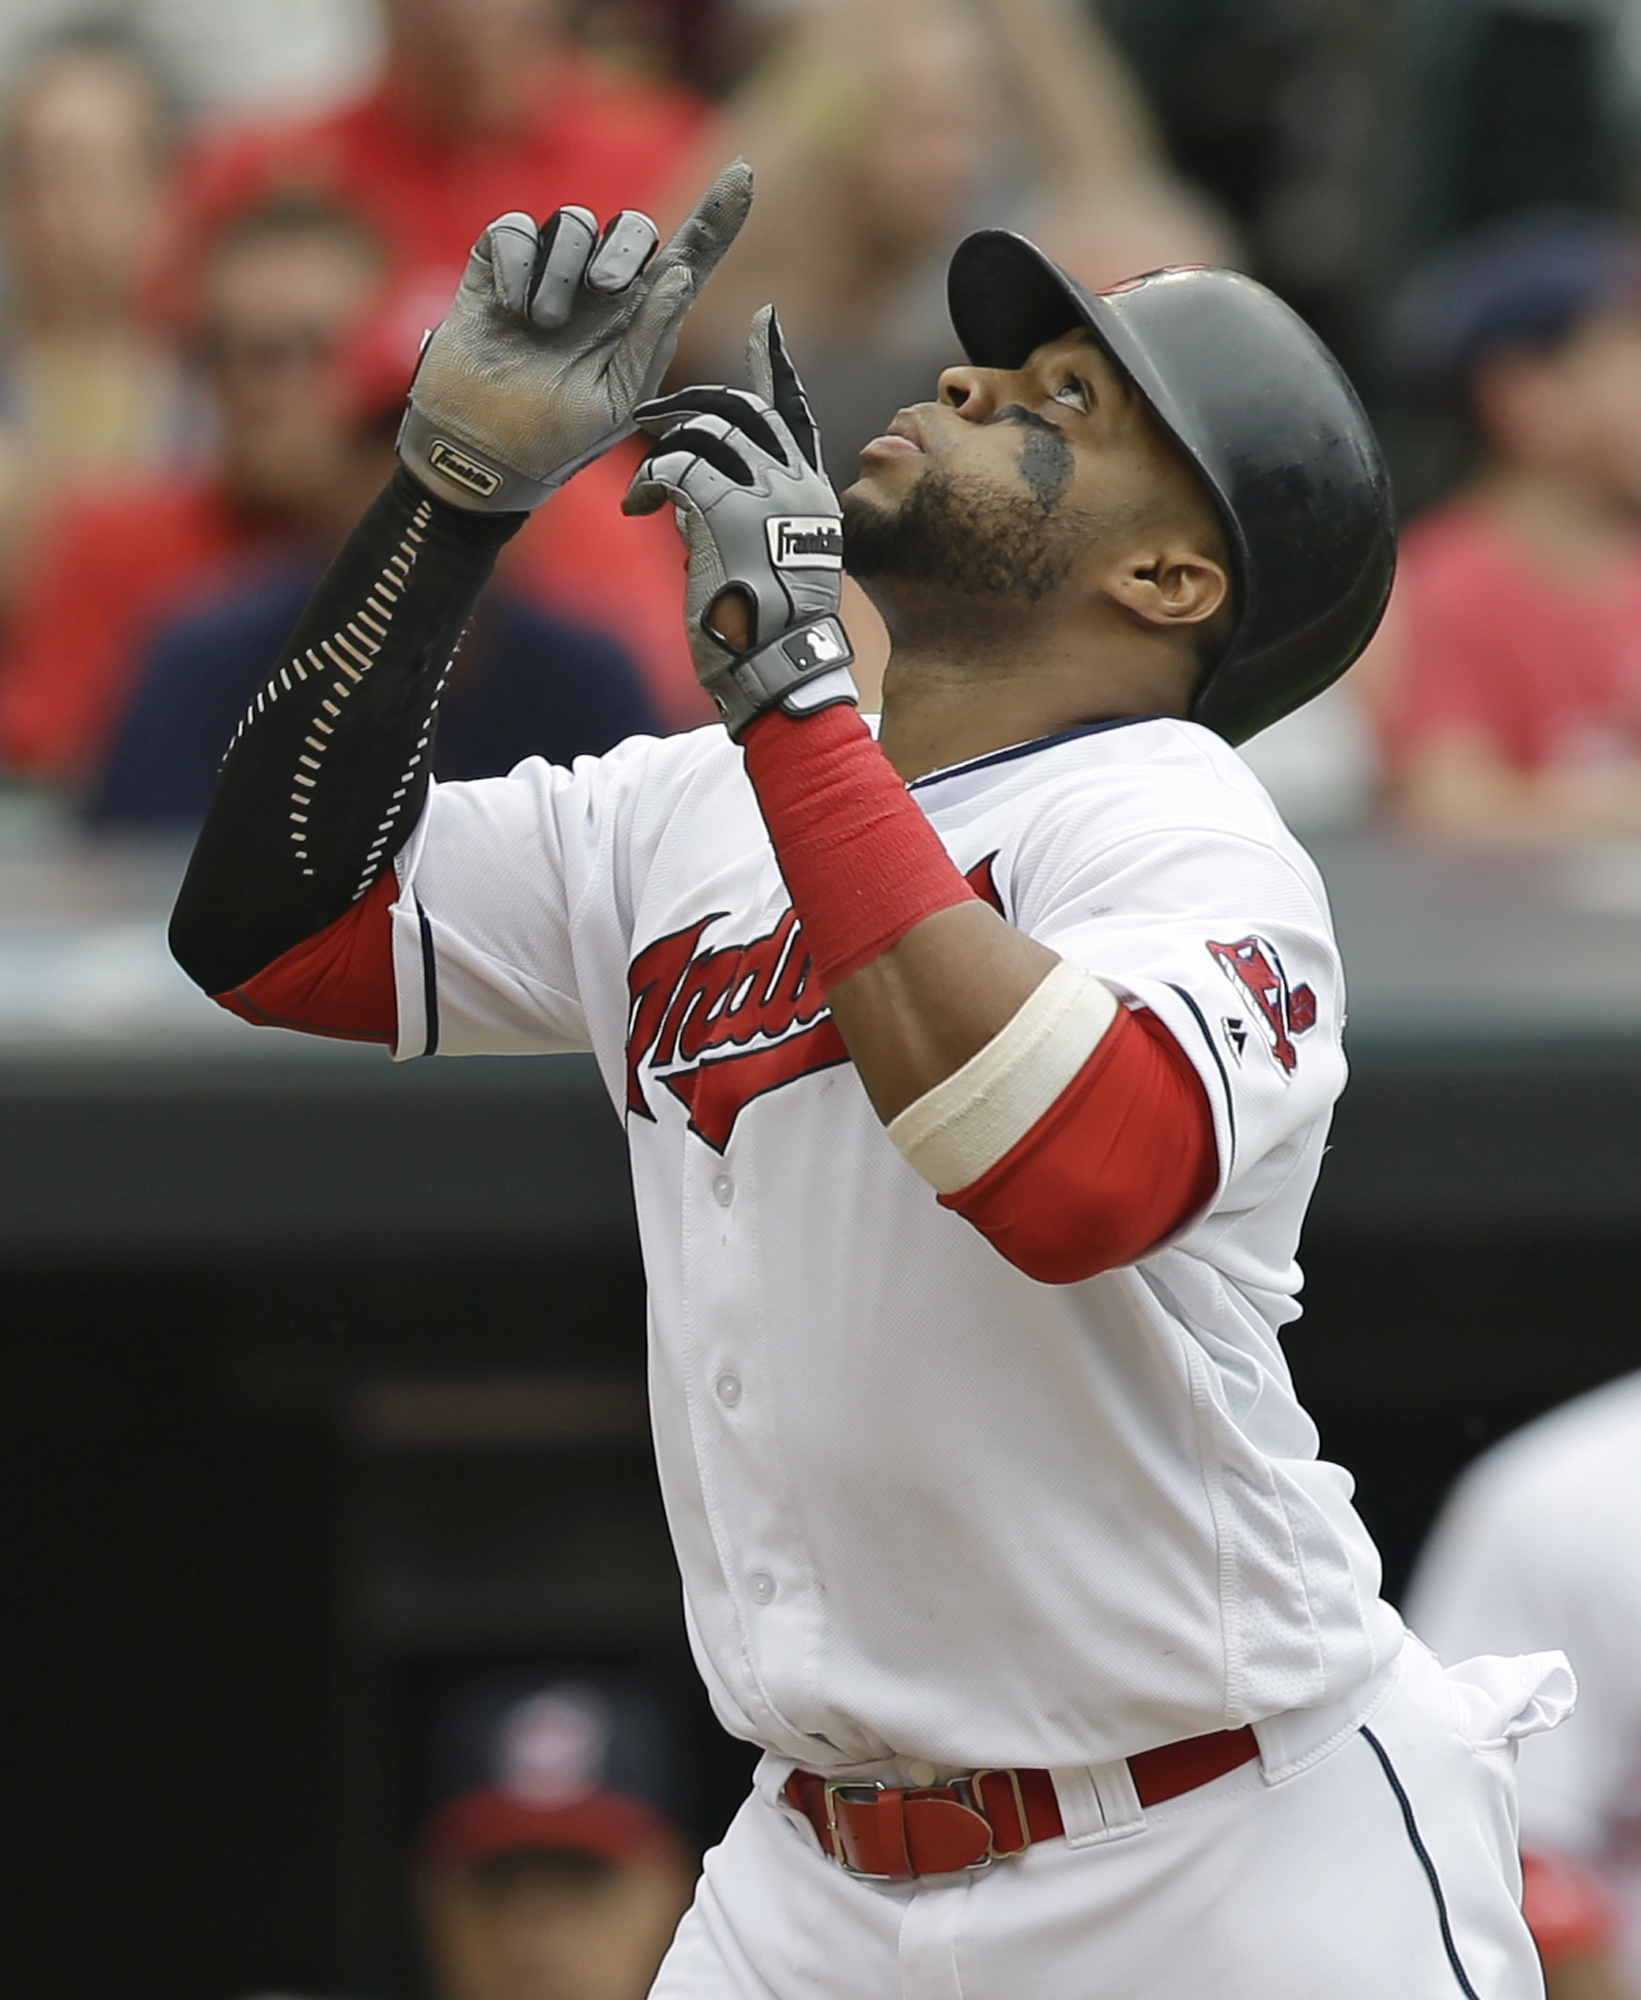 Cleveland Indians' Carlos Santana looks up after hitting a solo home run off Baltimore Orioles starting pitcher Chris Tillman in the fourth inning of a baseball game, Sunday, May 29, 2016, in Cleveland. (AP Photo/Tony Dejak)